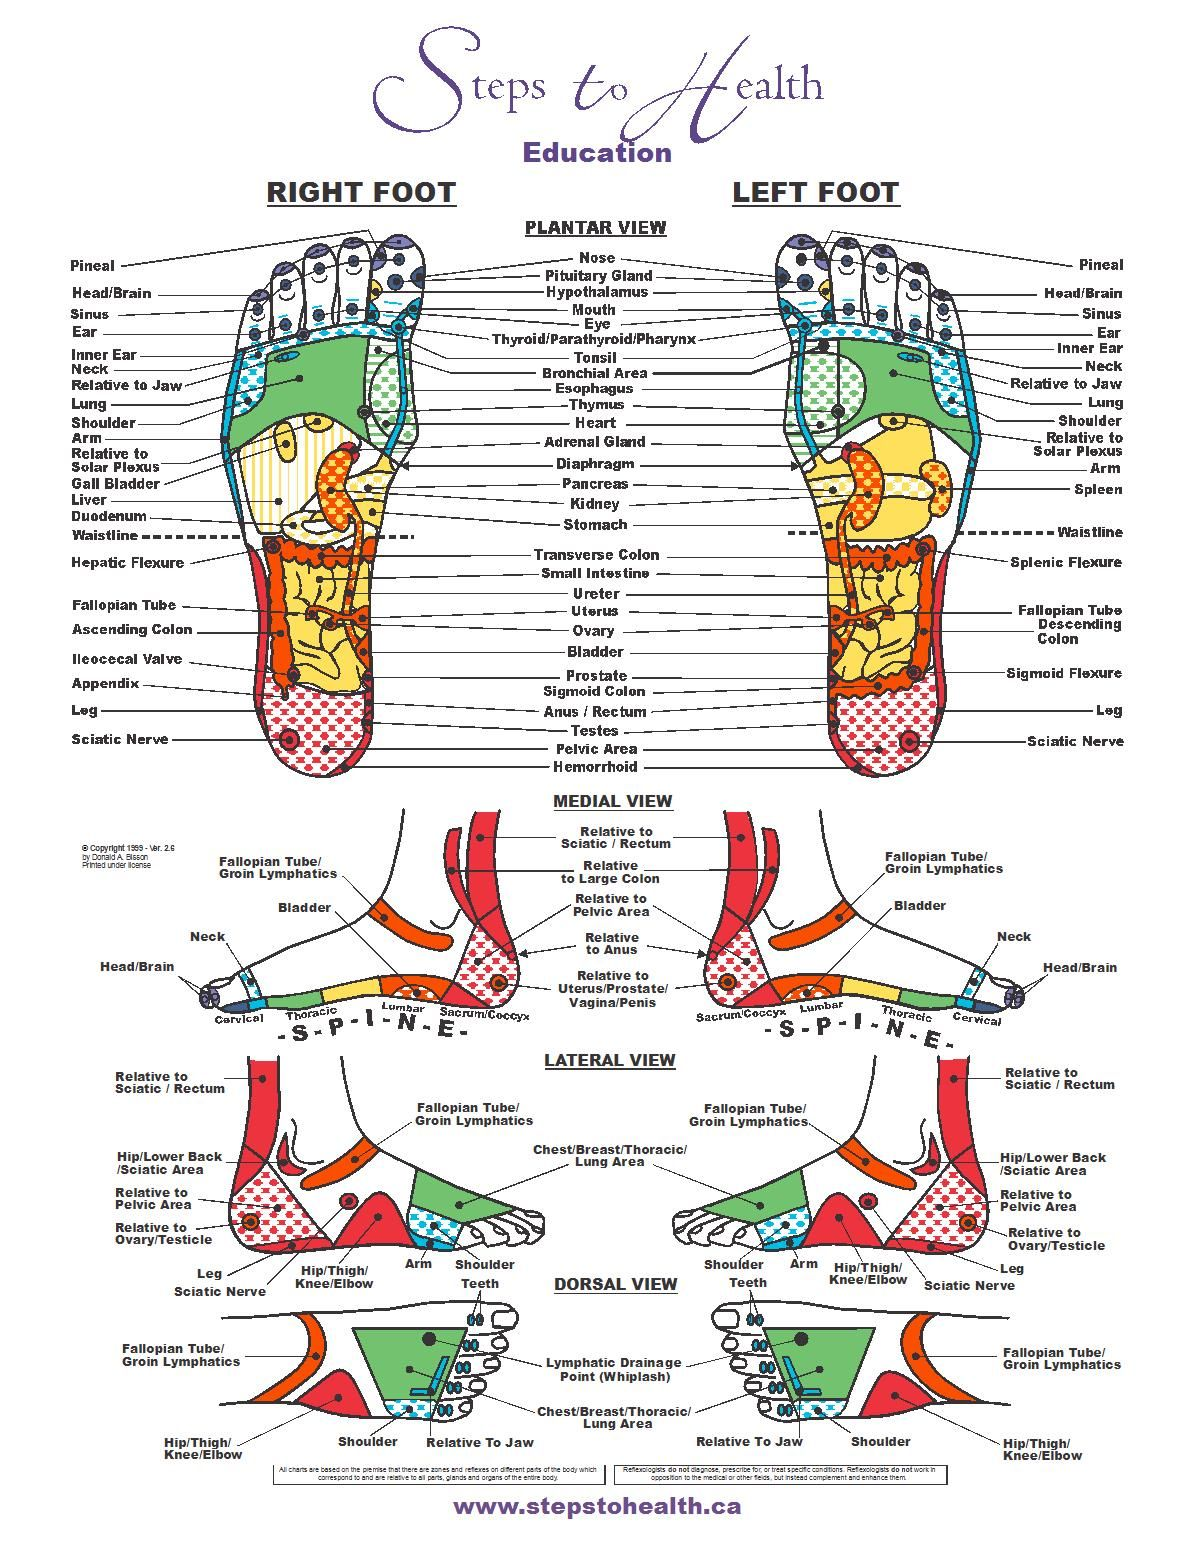 reflexology foot diagram reflex zones sony 52wx4 wiring zoning chart | our bodies communicate to us clearly and specifically, if we are ...